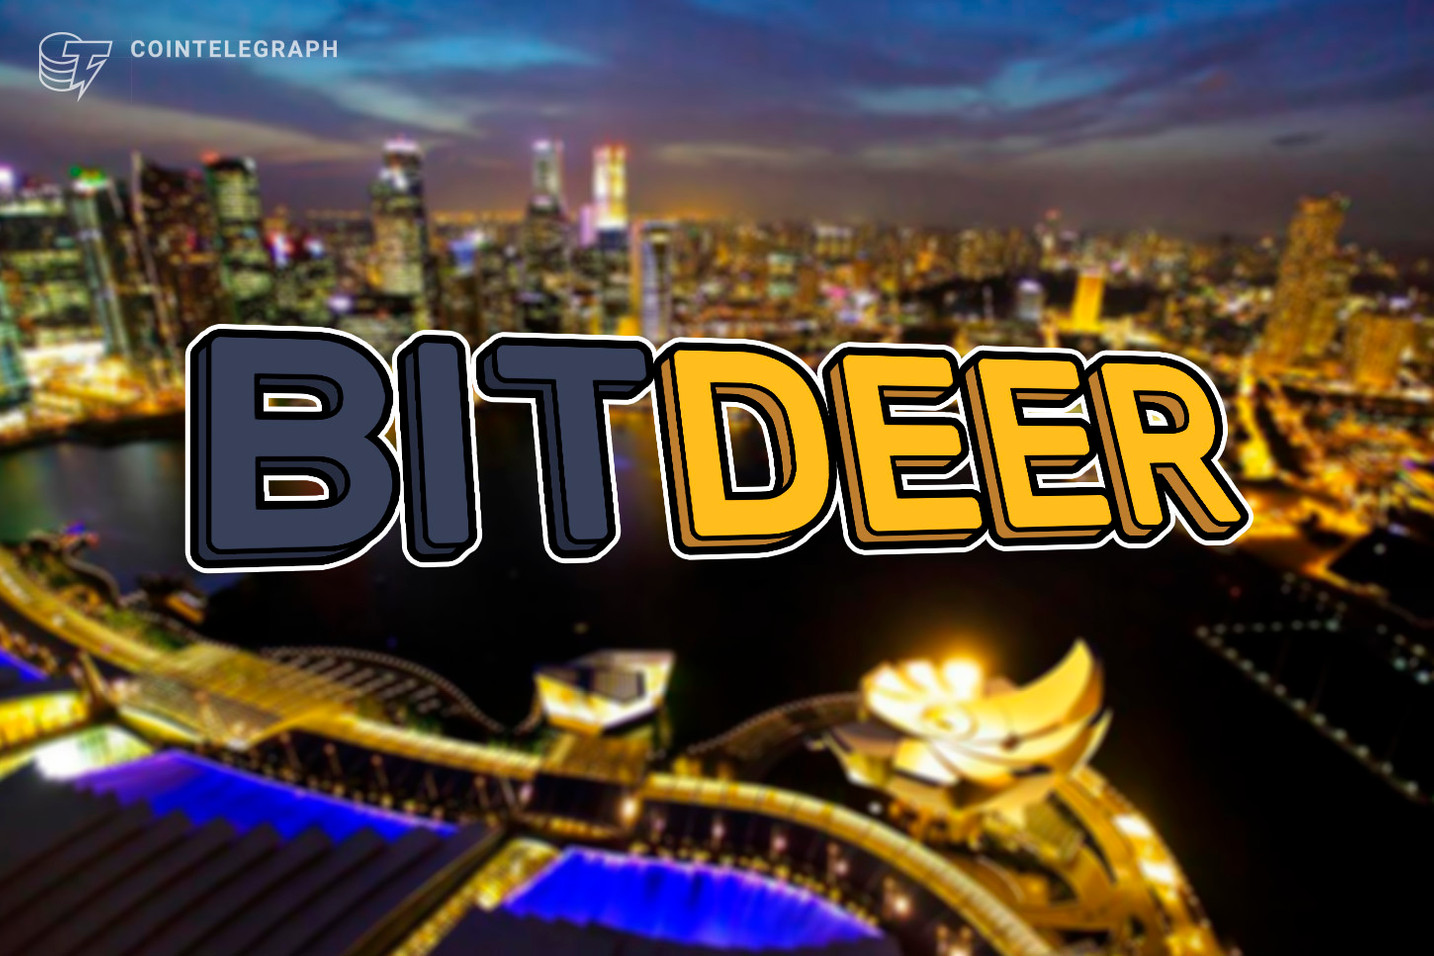 BitDeer.com Announces Official Launch of Spanish and German Sites